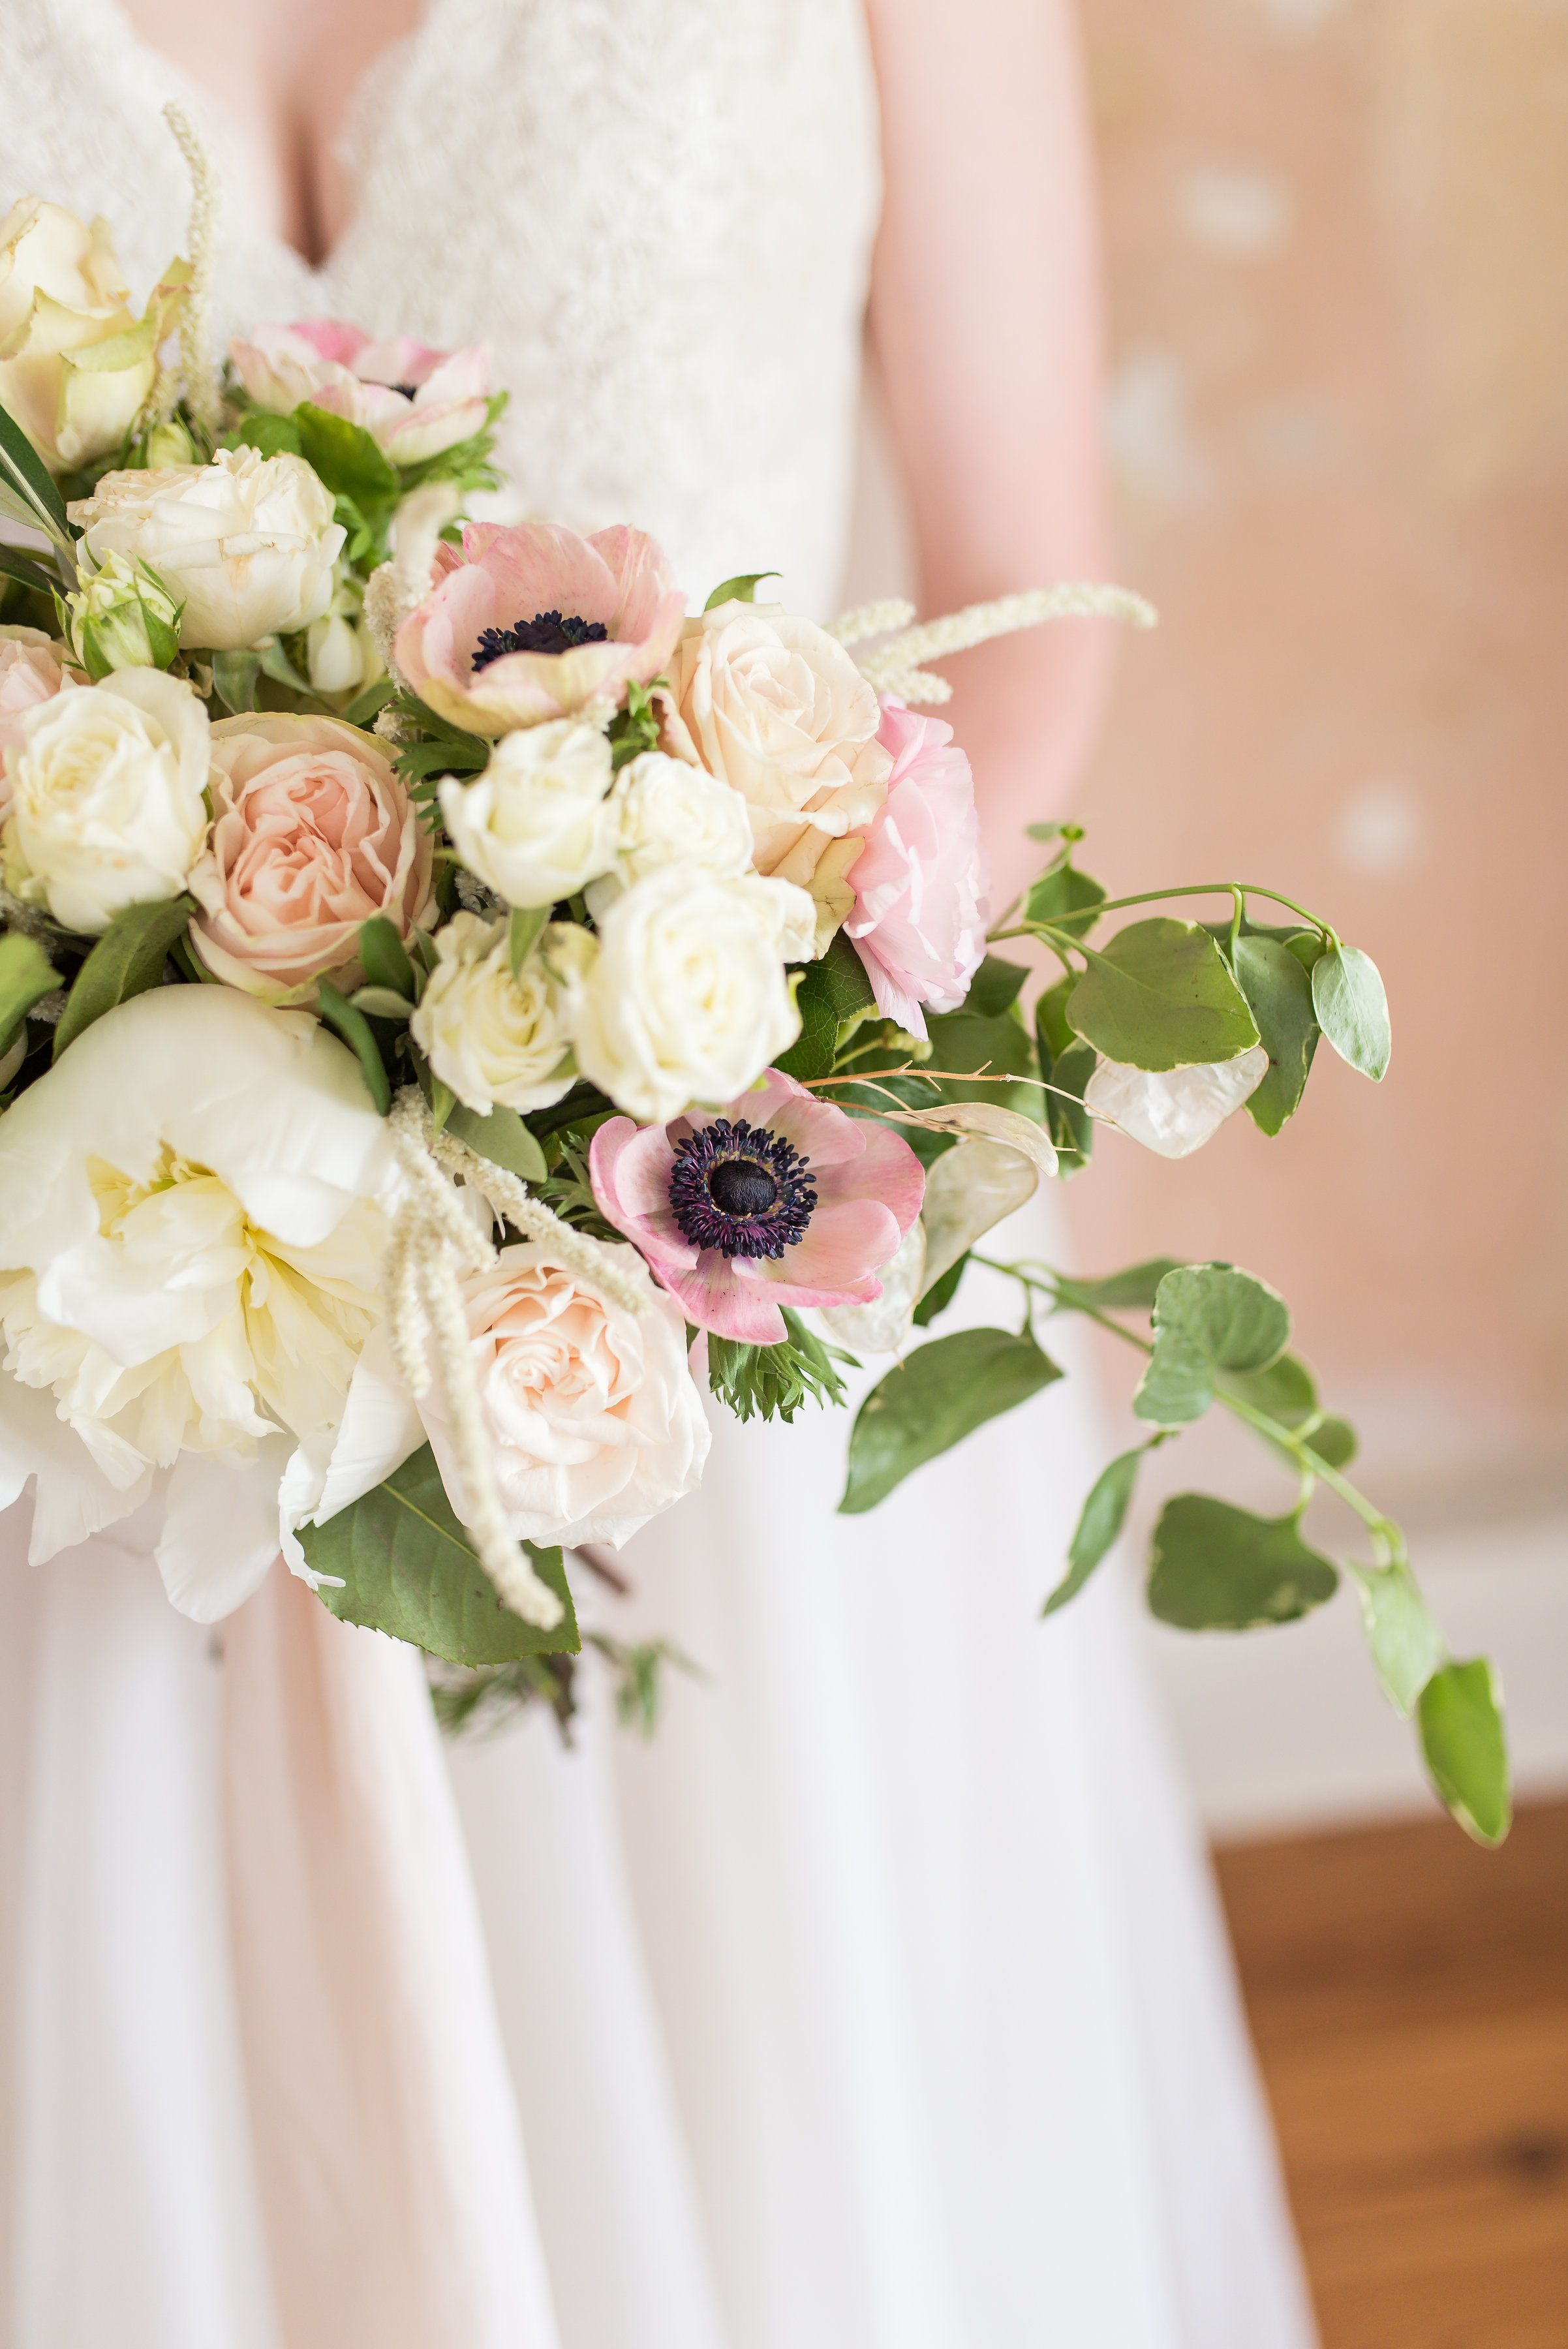 81155343c764 This Venue Looks Like It Was Made for the Bride. Peony and anemone wedding  bouquet